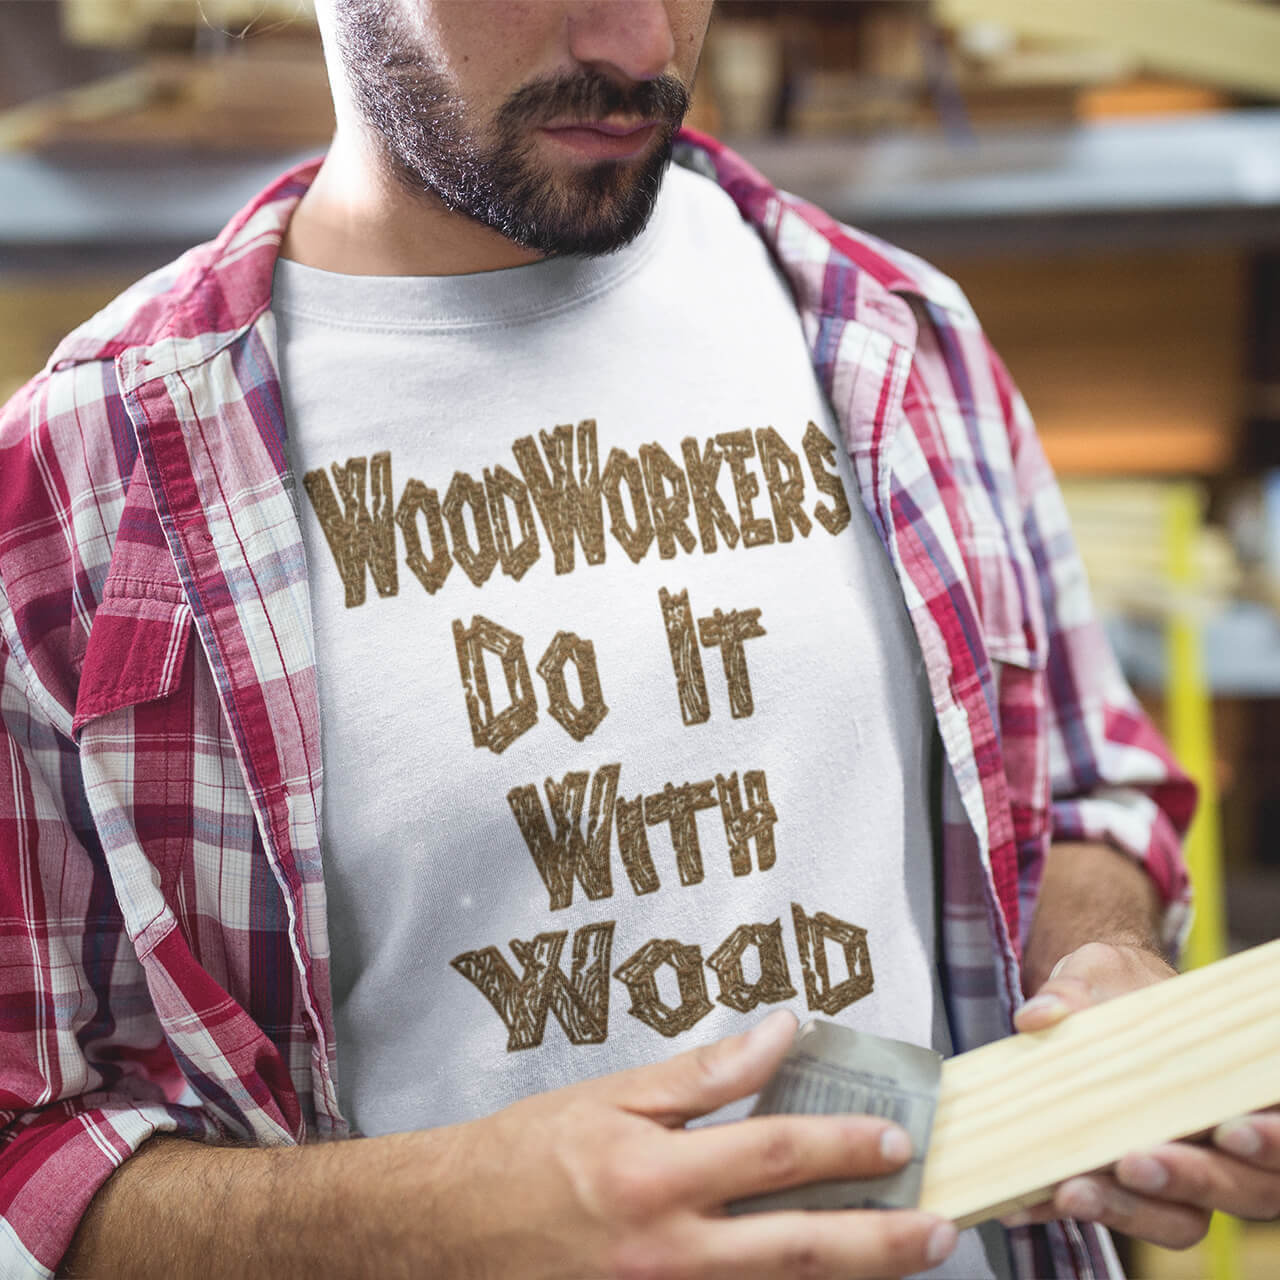 WoodWorkers Do It With Wood T-Shirt